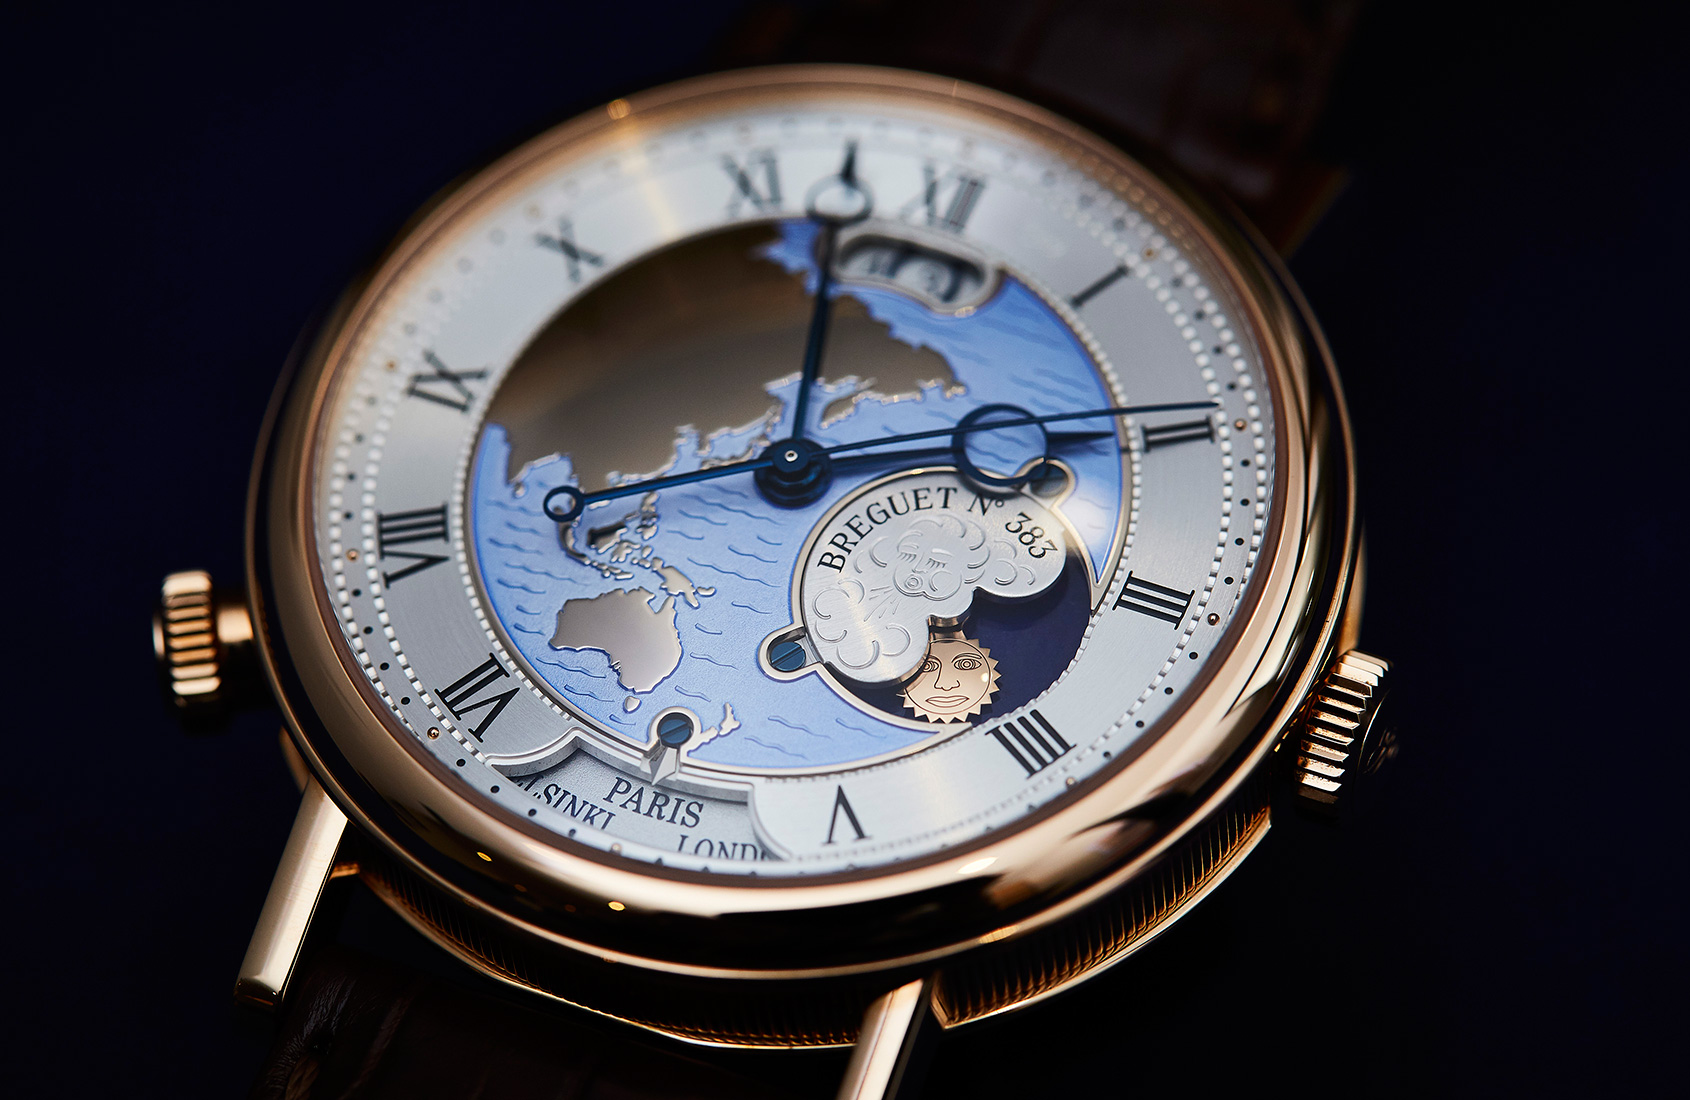 Breguet travel watches and the spirit of exploration – the Hora Mundi ref. 5717